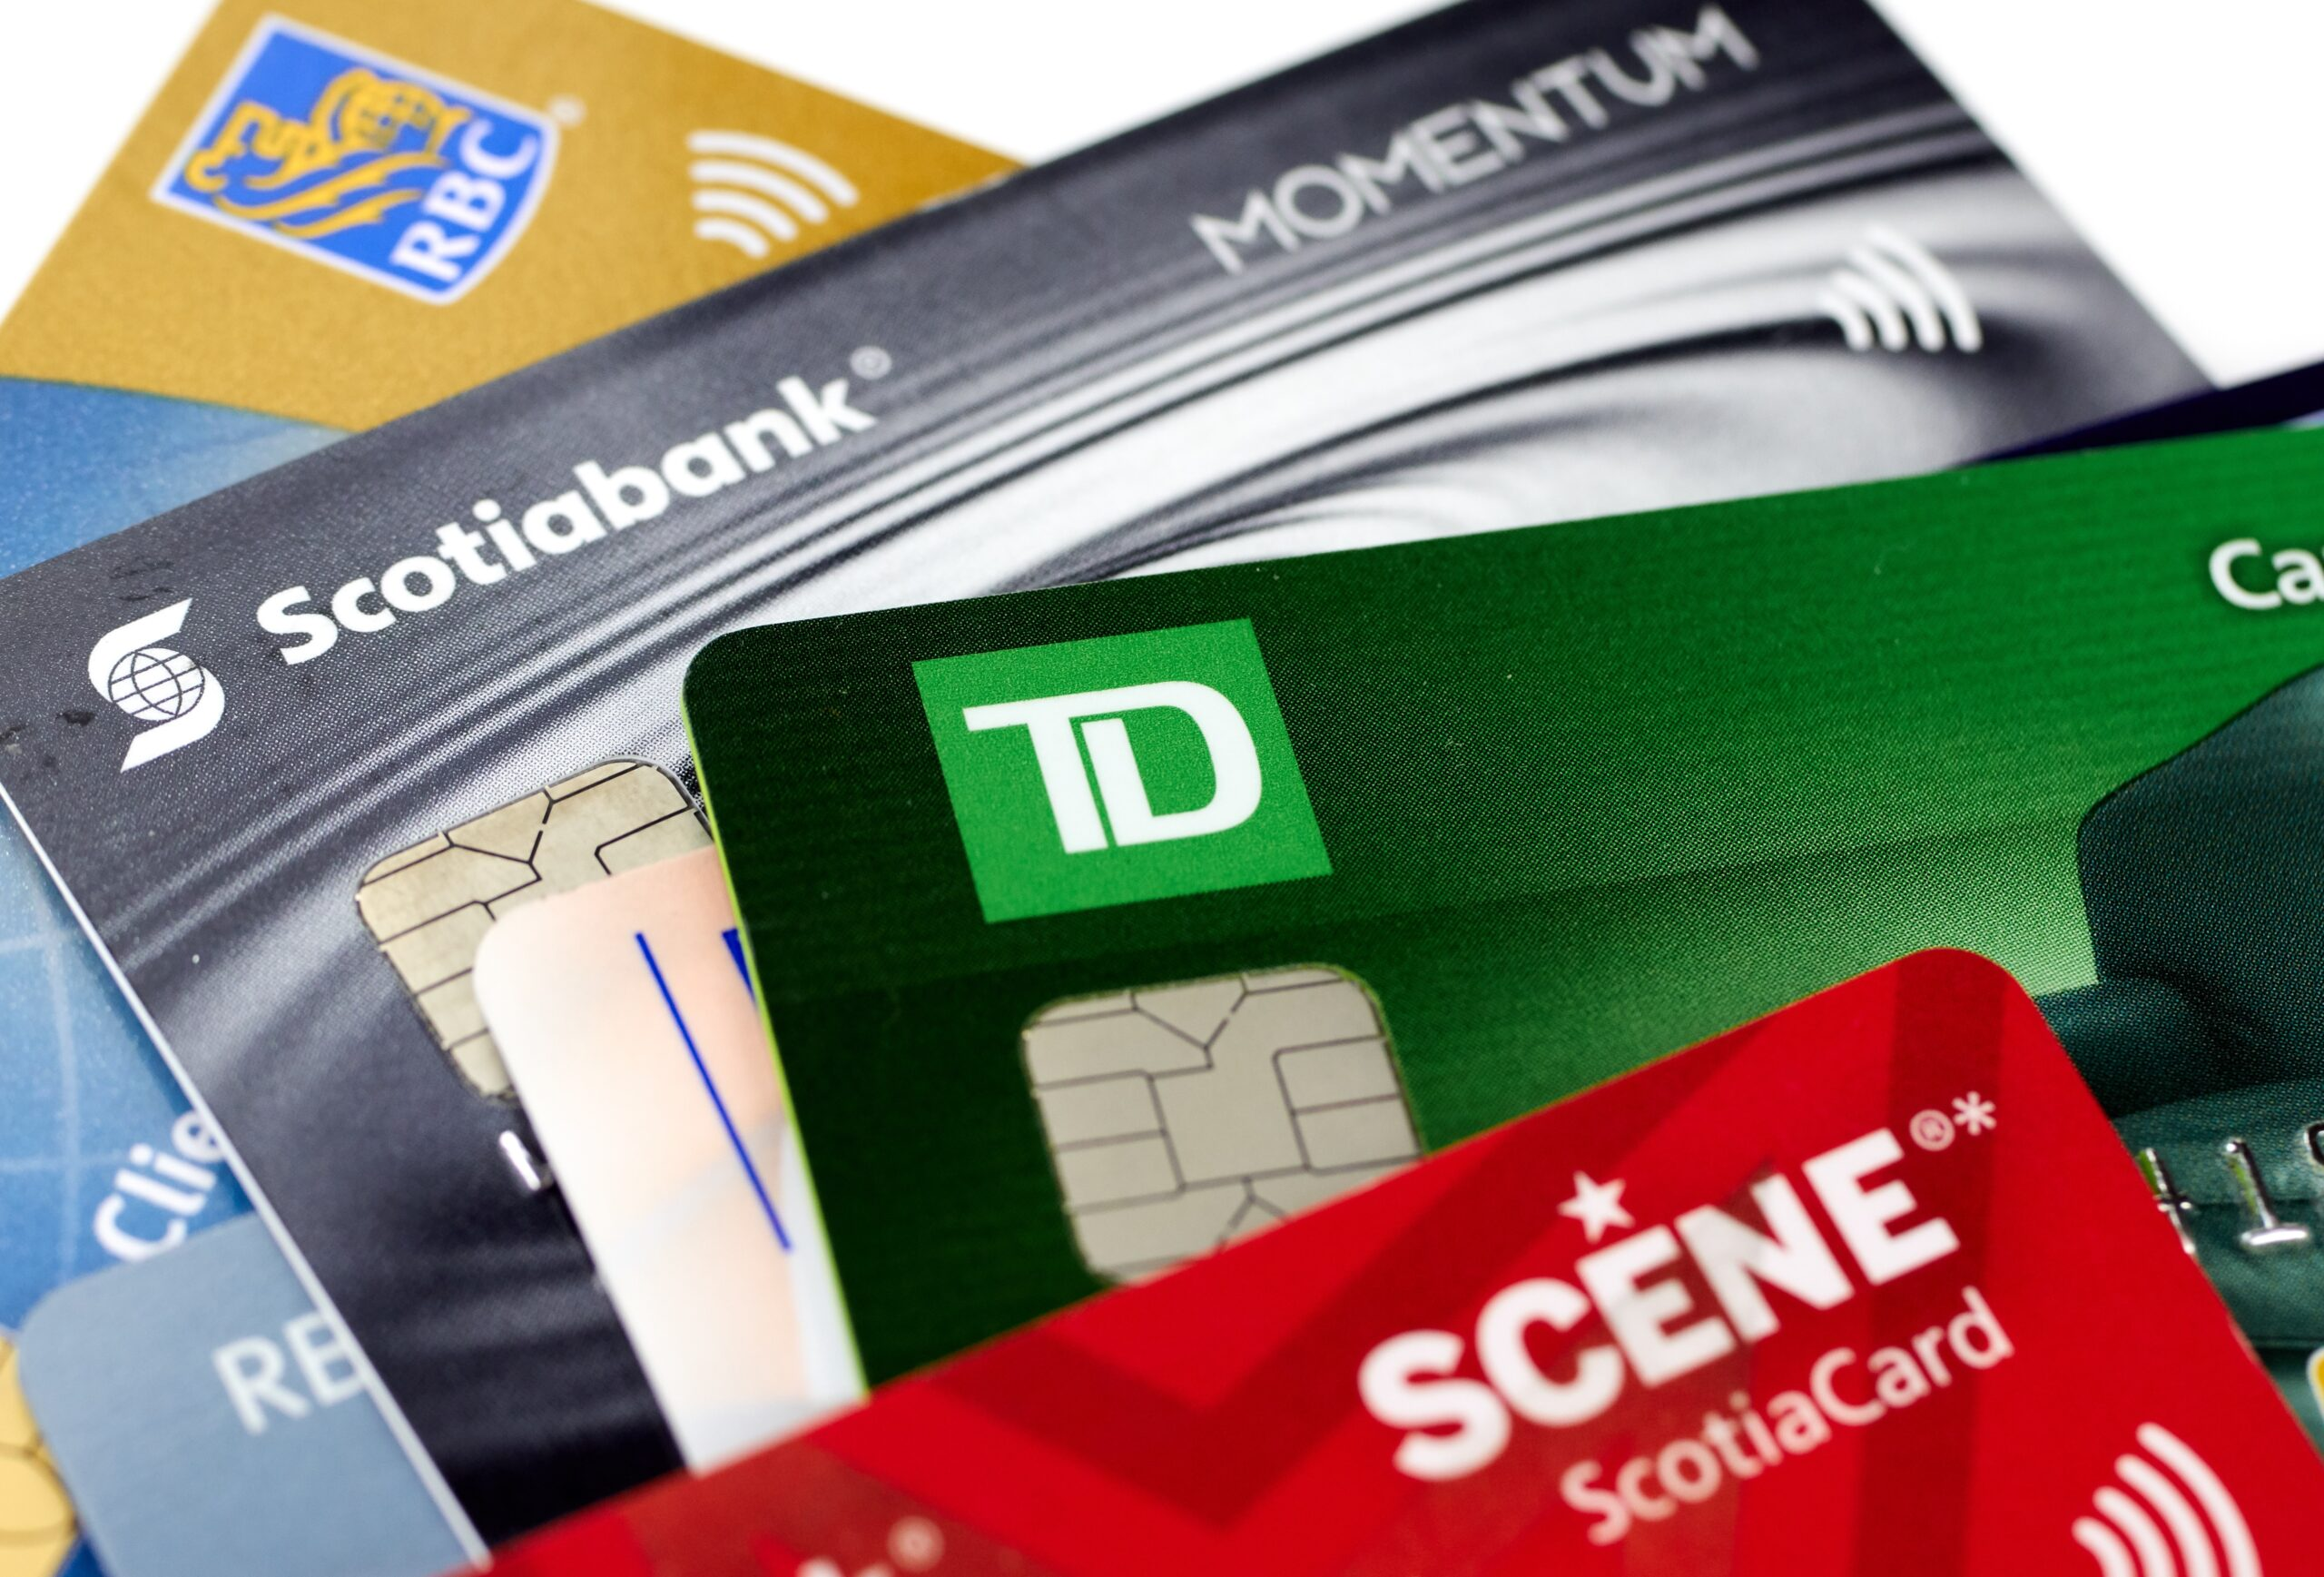 Multiple Credit Cards Stacked on One Another